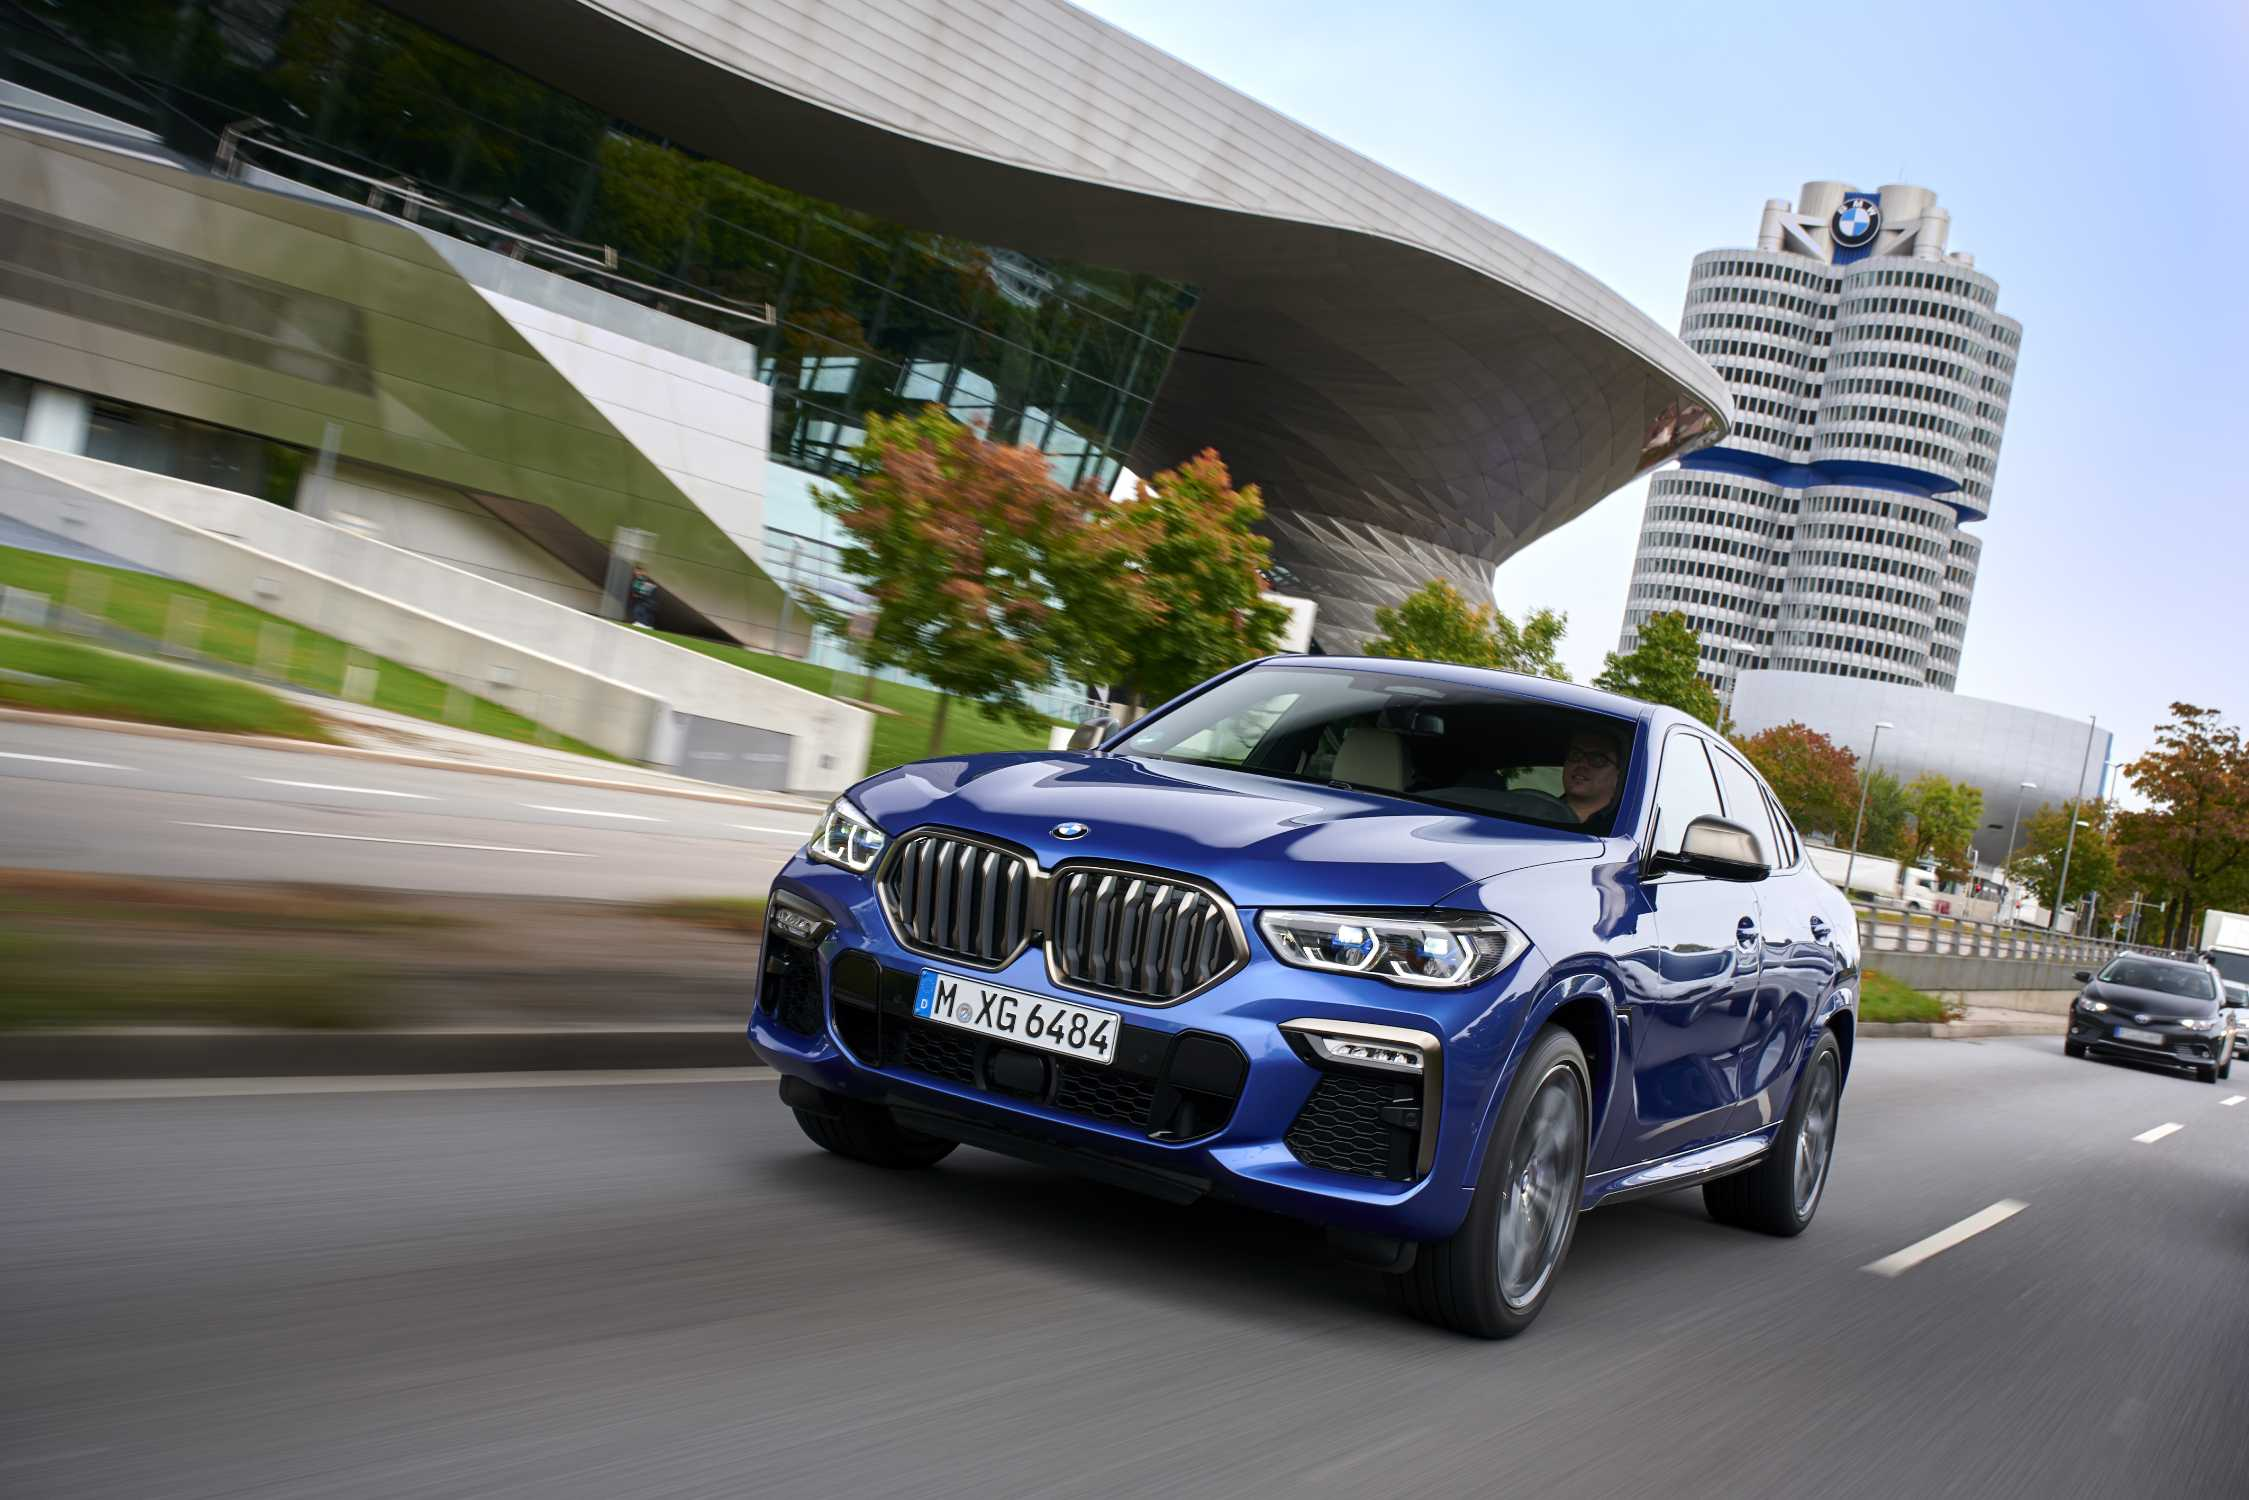 The New Bmw X6 Additional Pictures And Videos